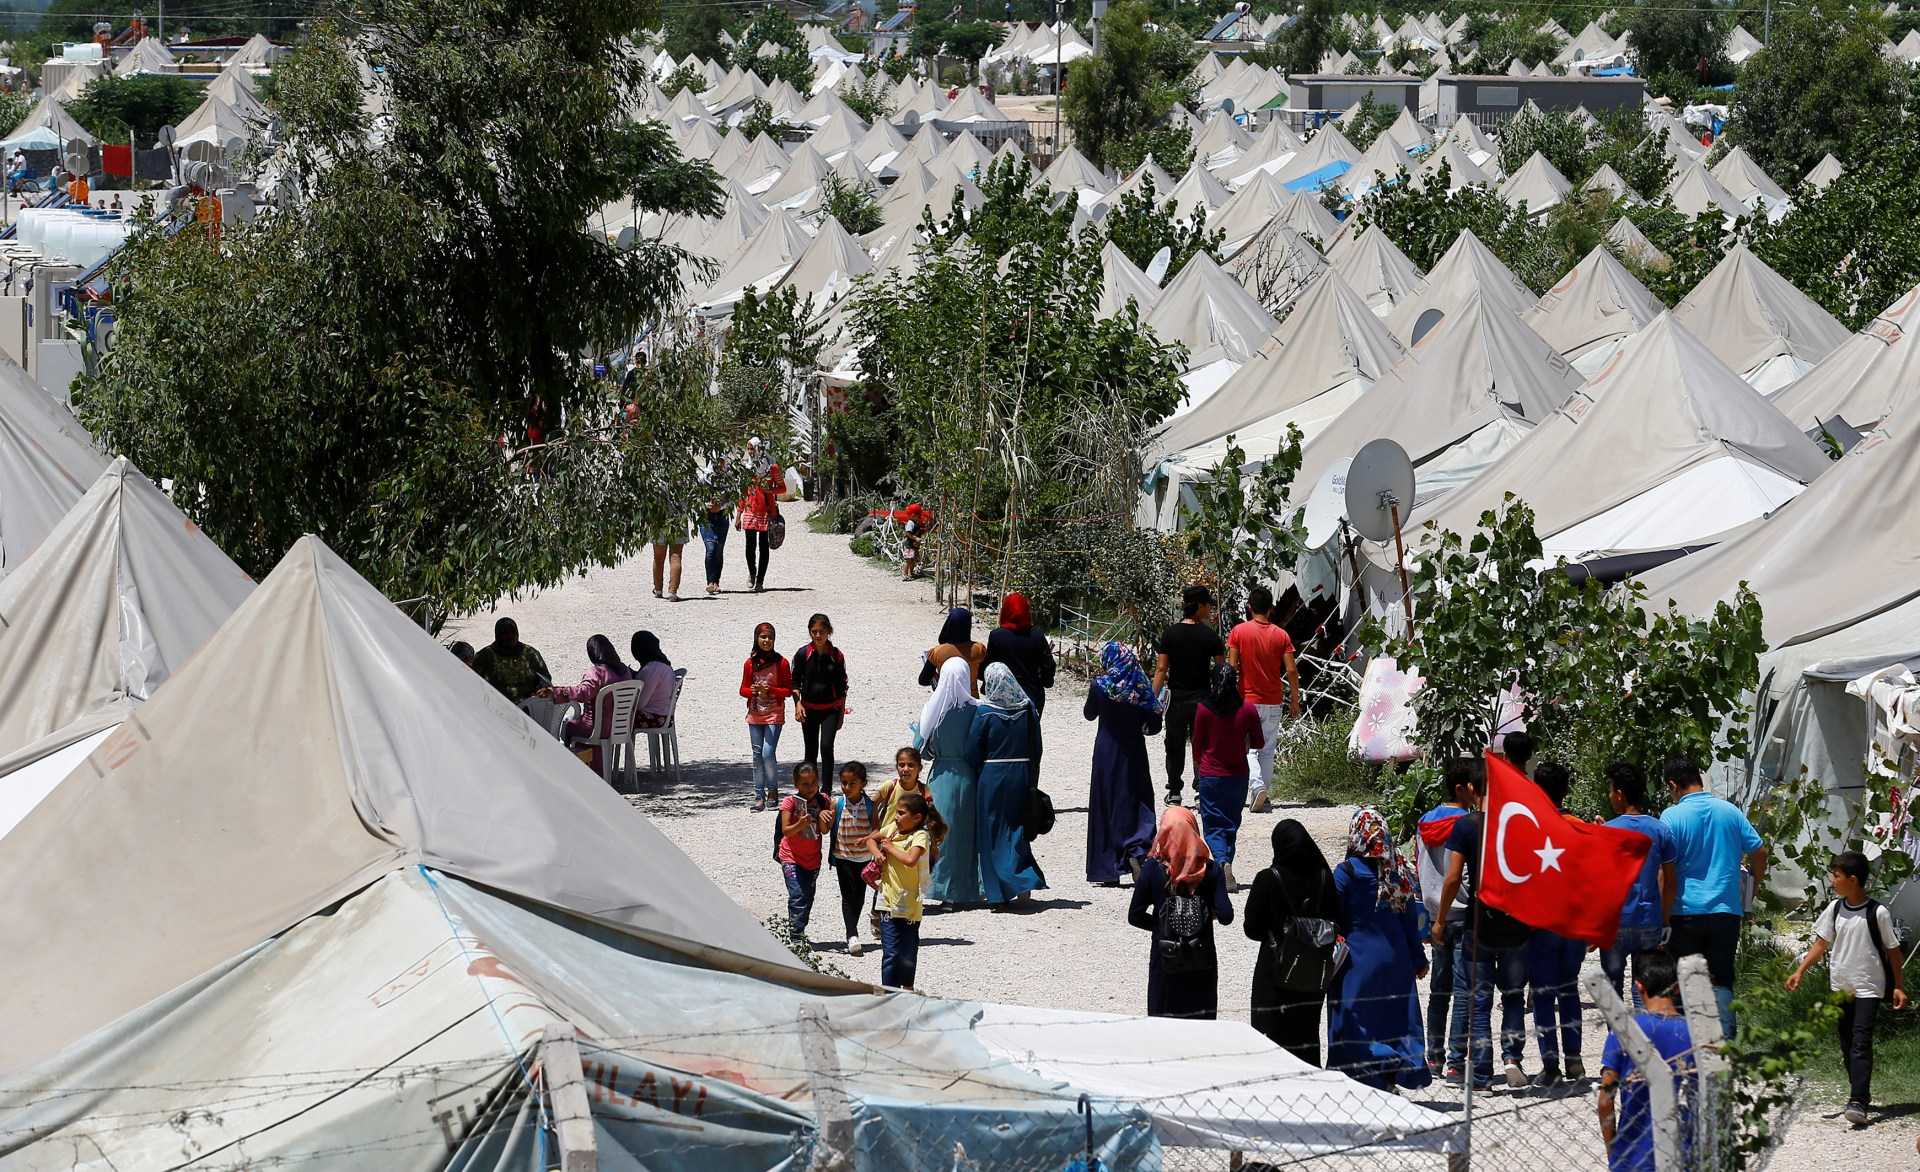 Syrian refugees stroll at a refugee camp in Osmaniye, Turkey, May 17, 2016. REUTERS/Umit Bektas - RTSF6J7